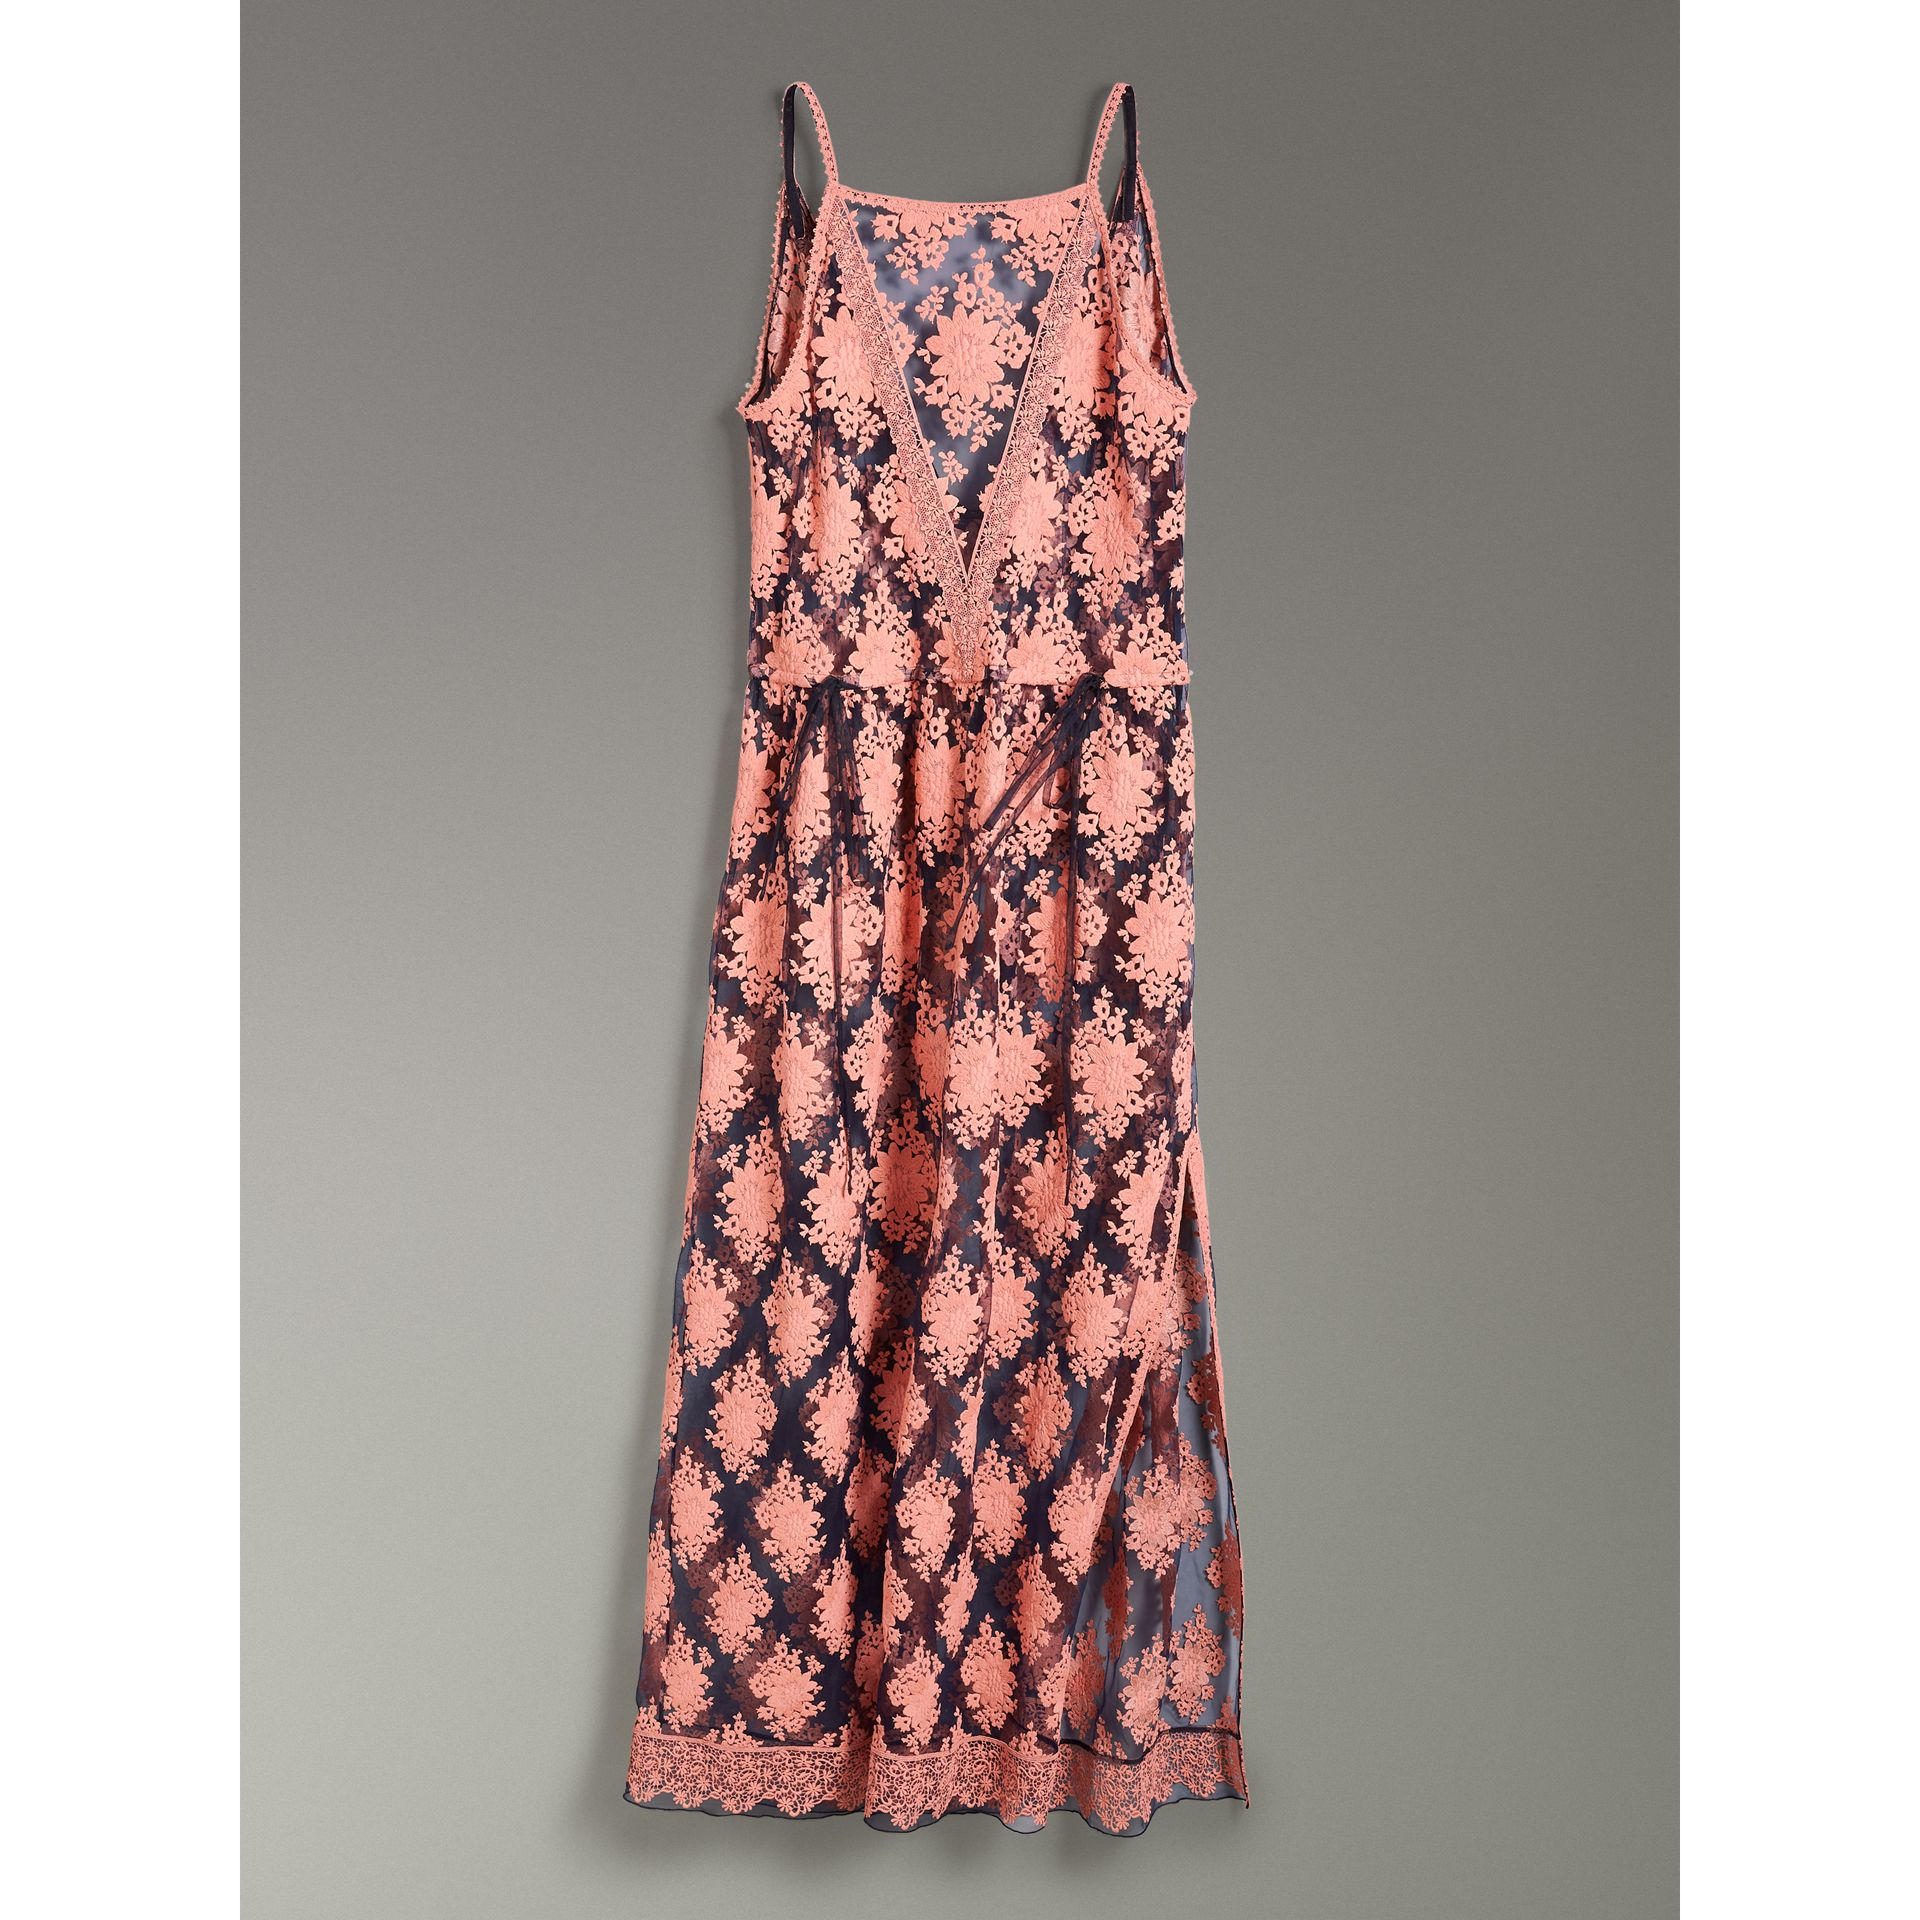 Floral-embroidered Sleeveless Dress in Rose/midnight Blue - Women | Burberry - gallery image 3